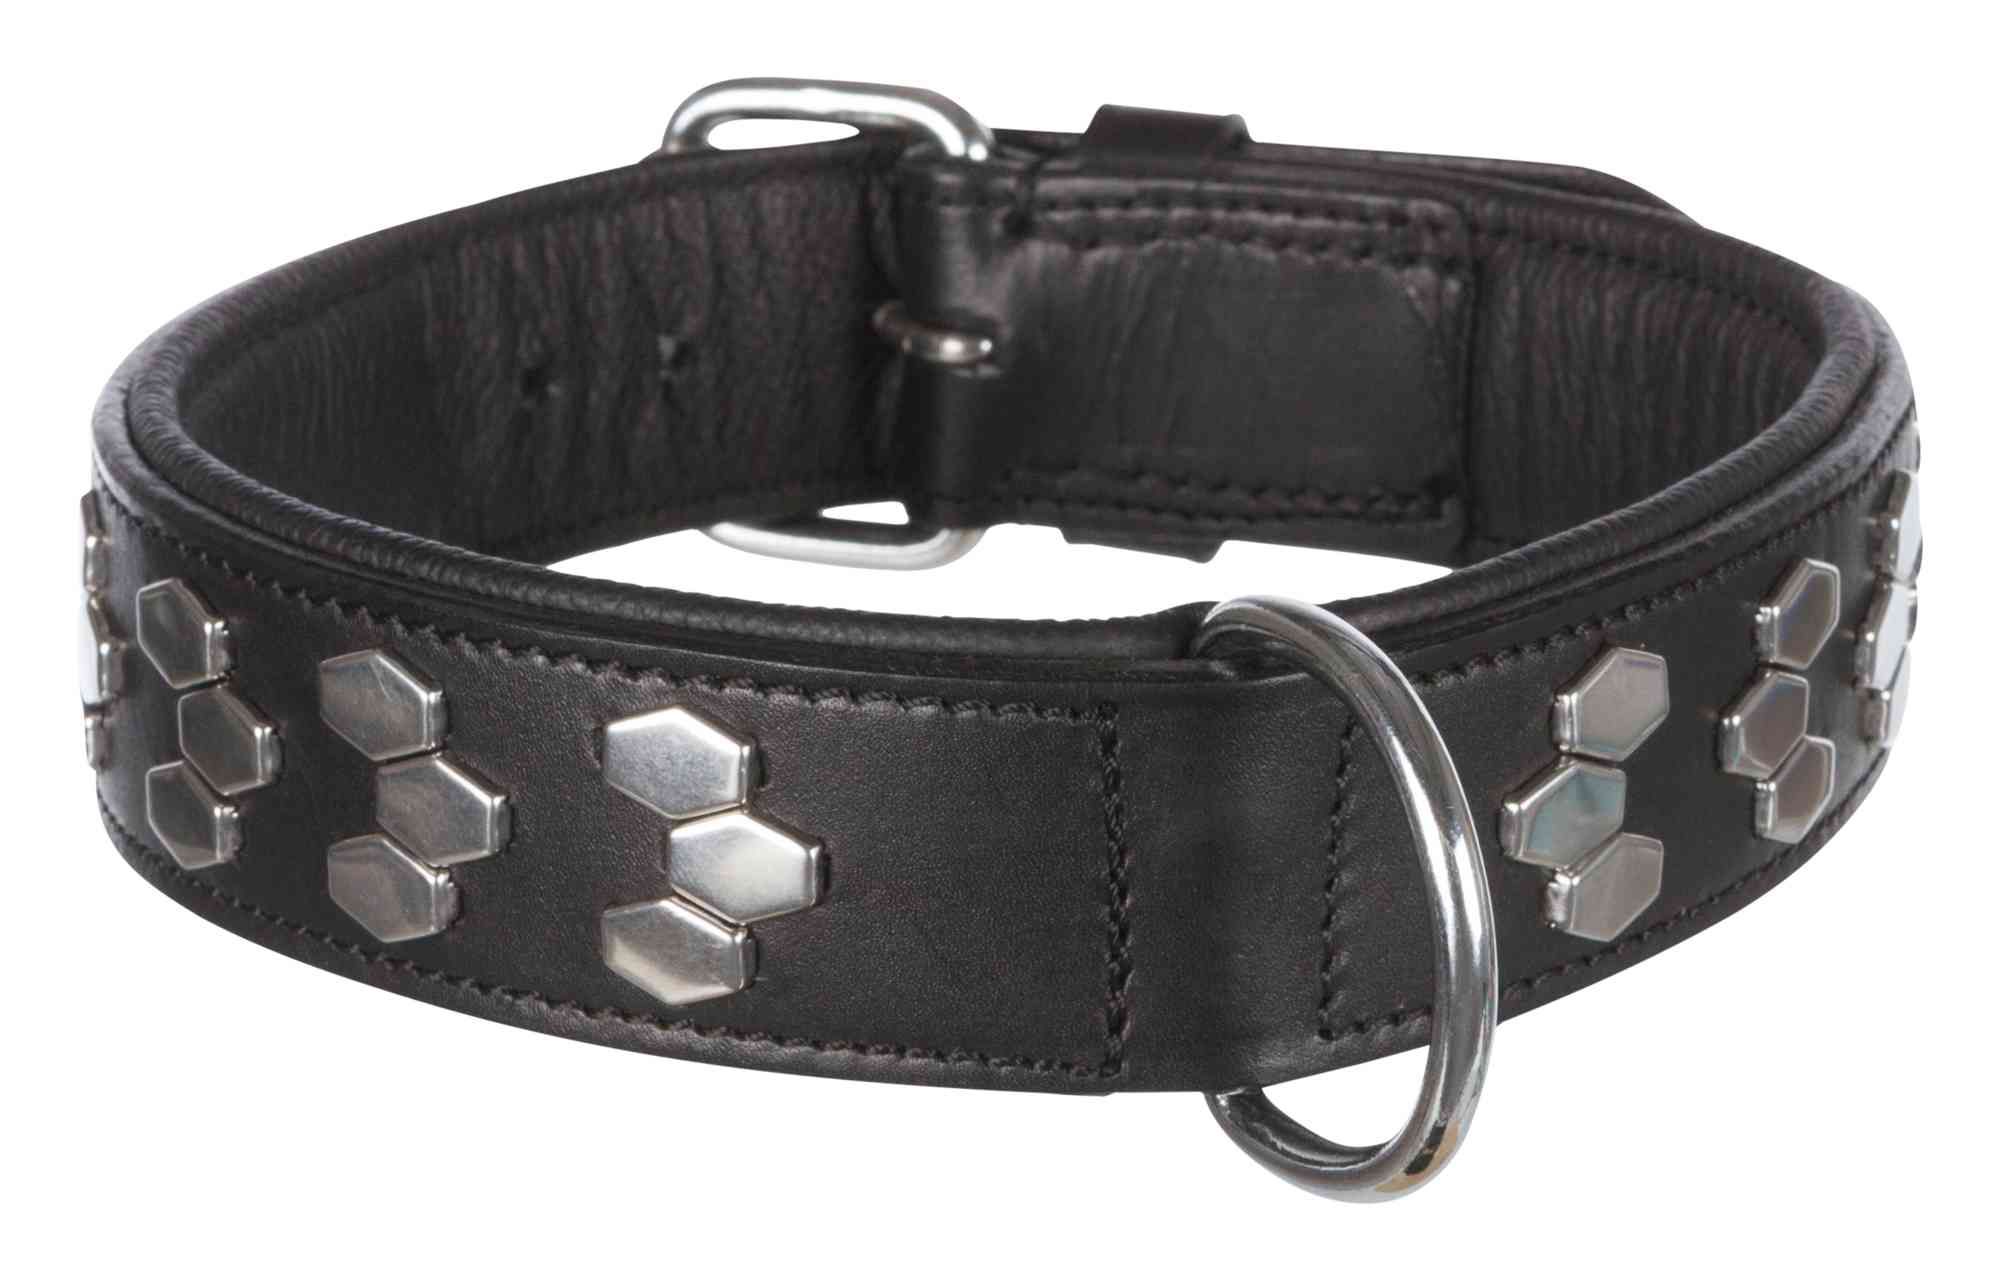 TRIXIE Active Halsband, extra breit, mit Applikationen TRIXIE Active Halsband mit Applikationen, Leder, M: 38–45 cm/40 mm, schwarz